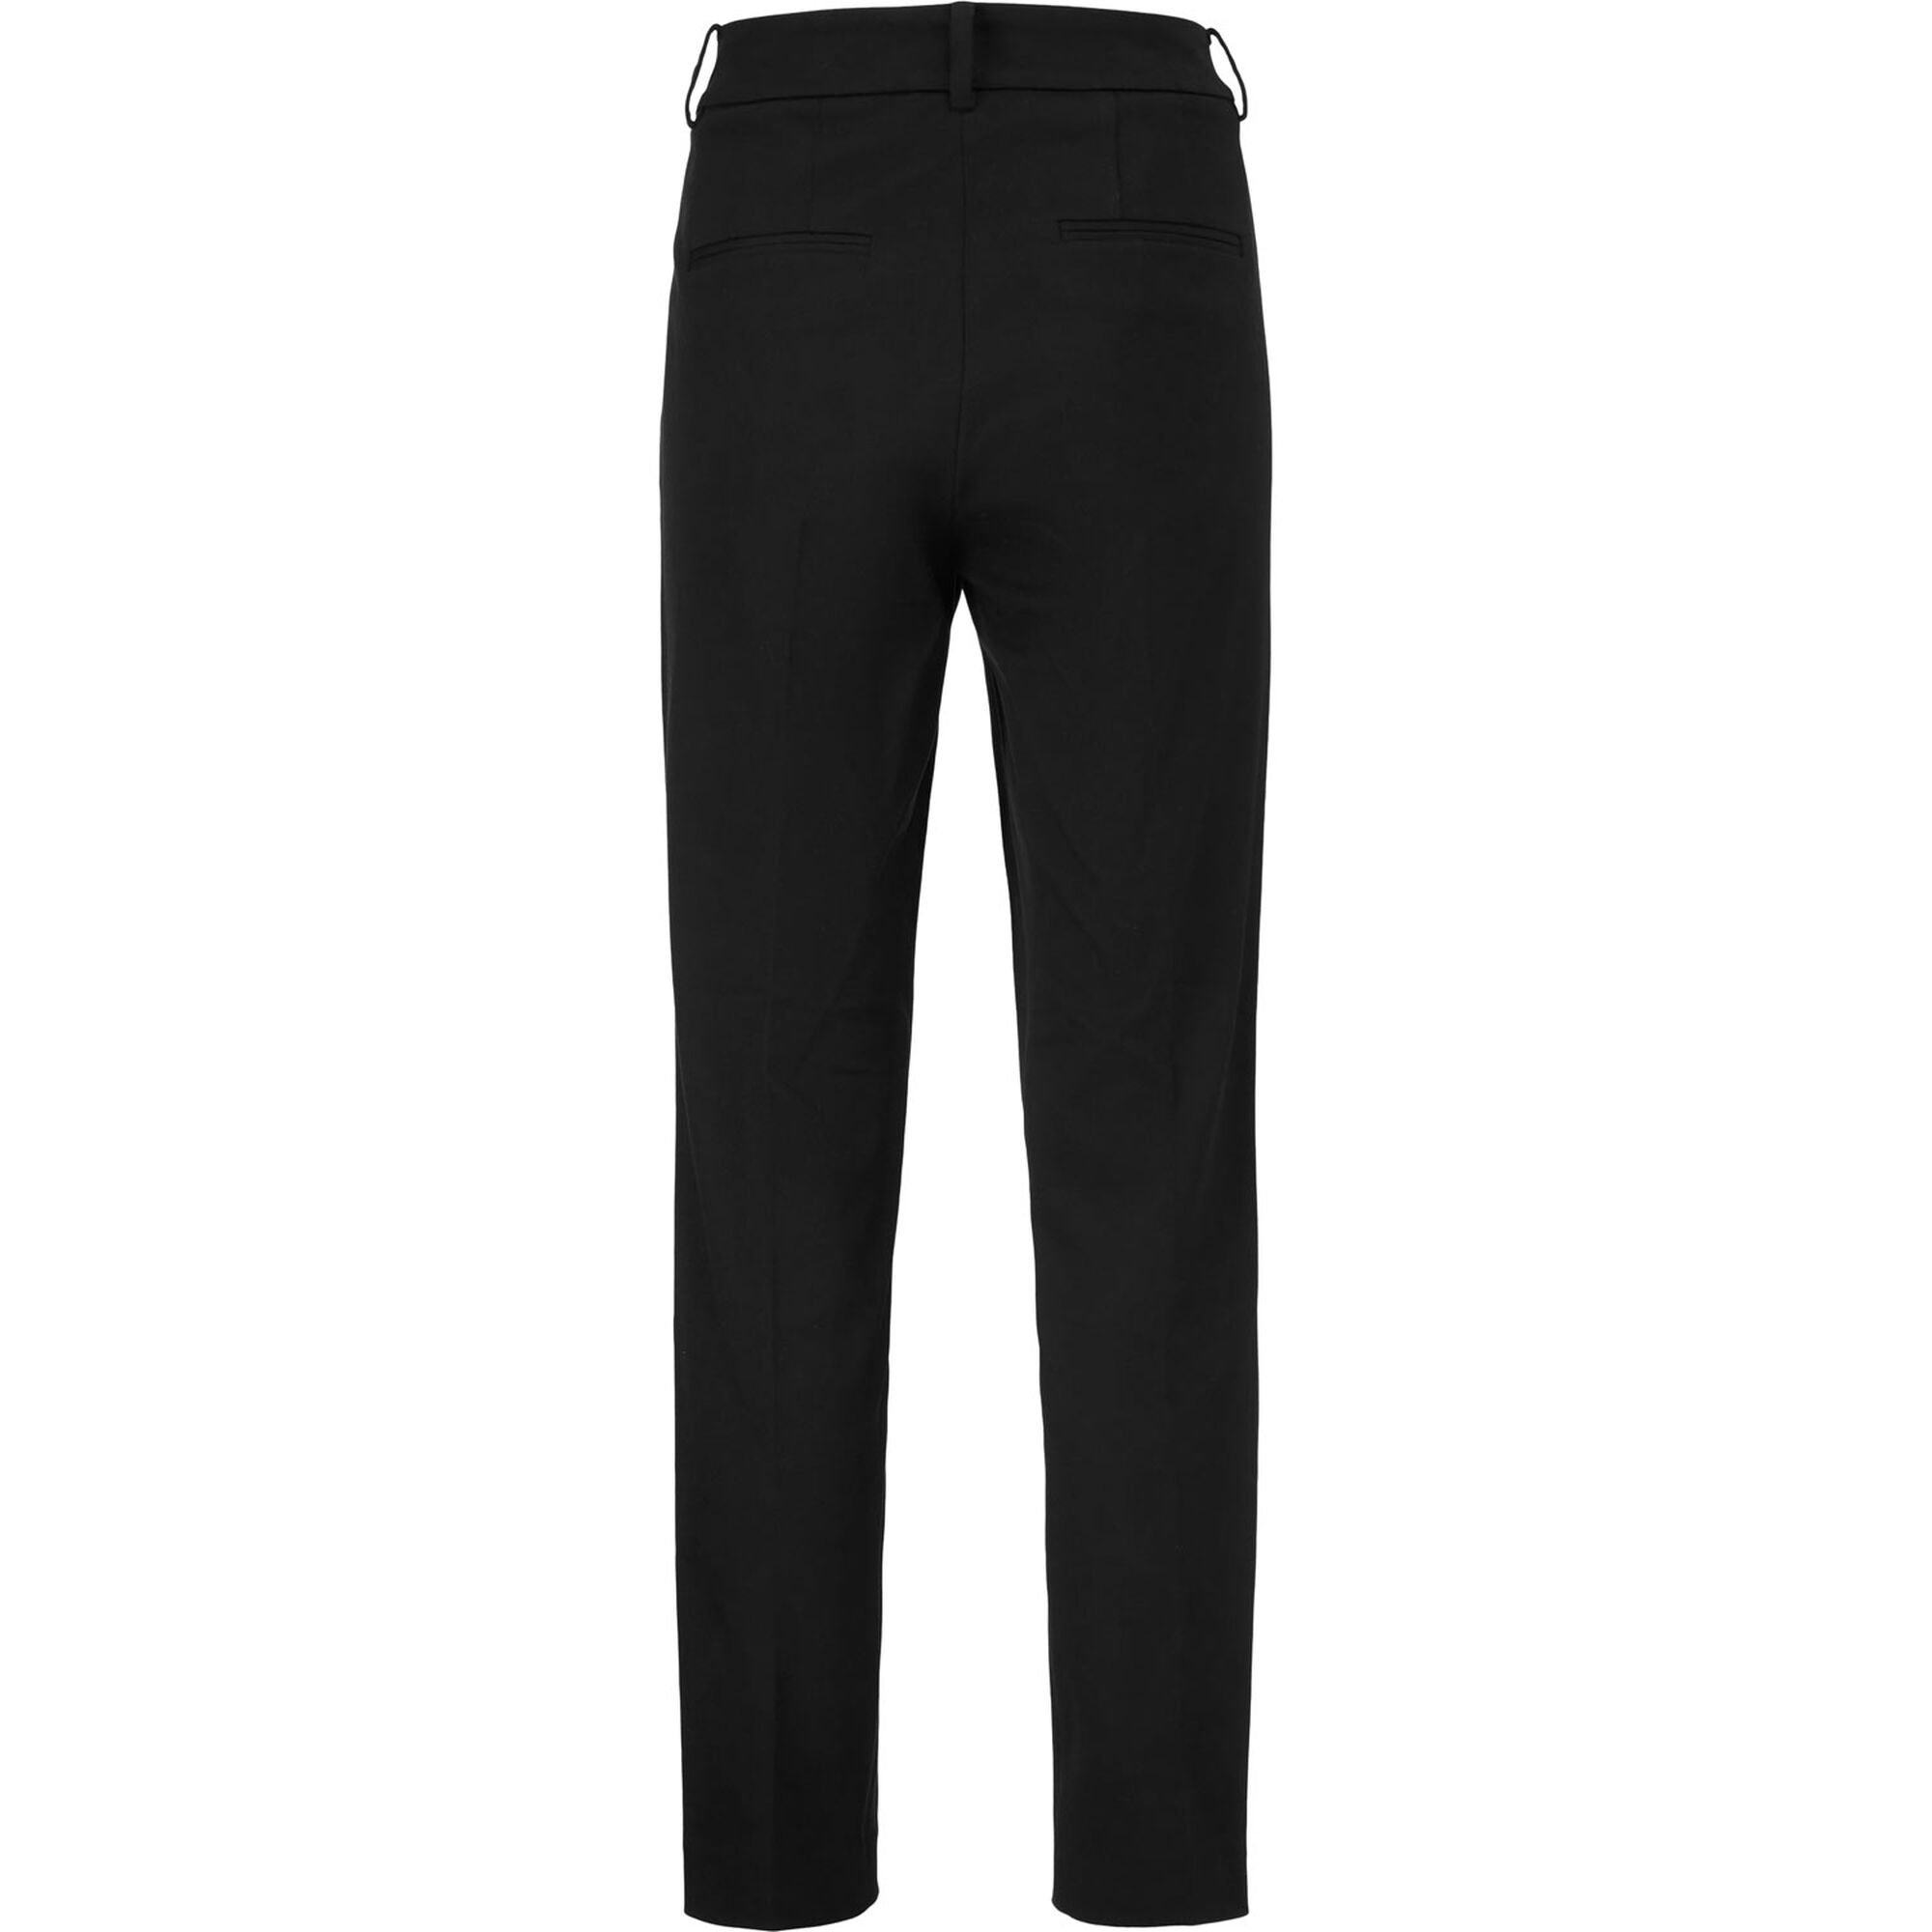 PATSY TROUSERS, Black, hi-res